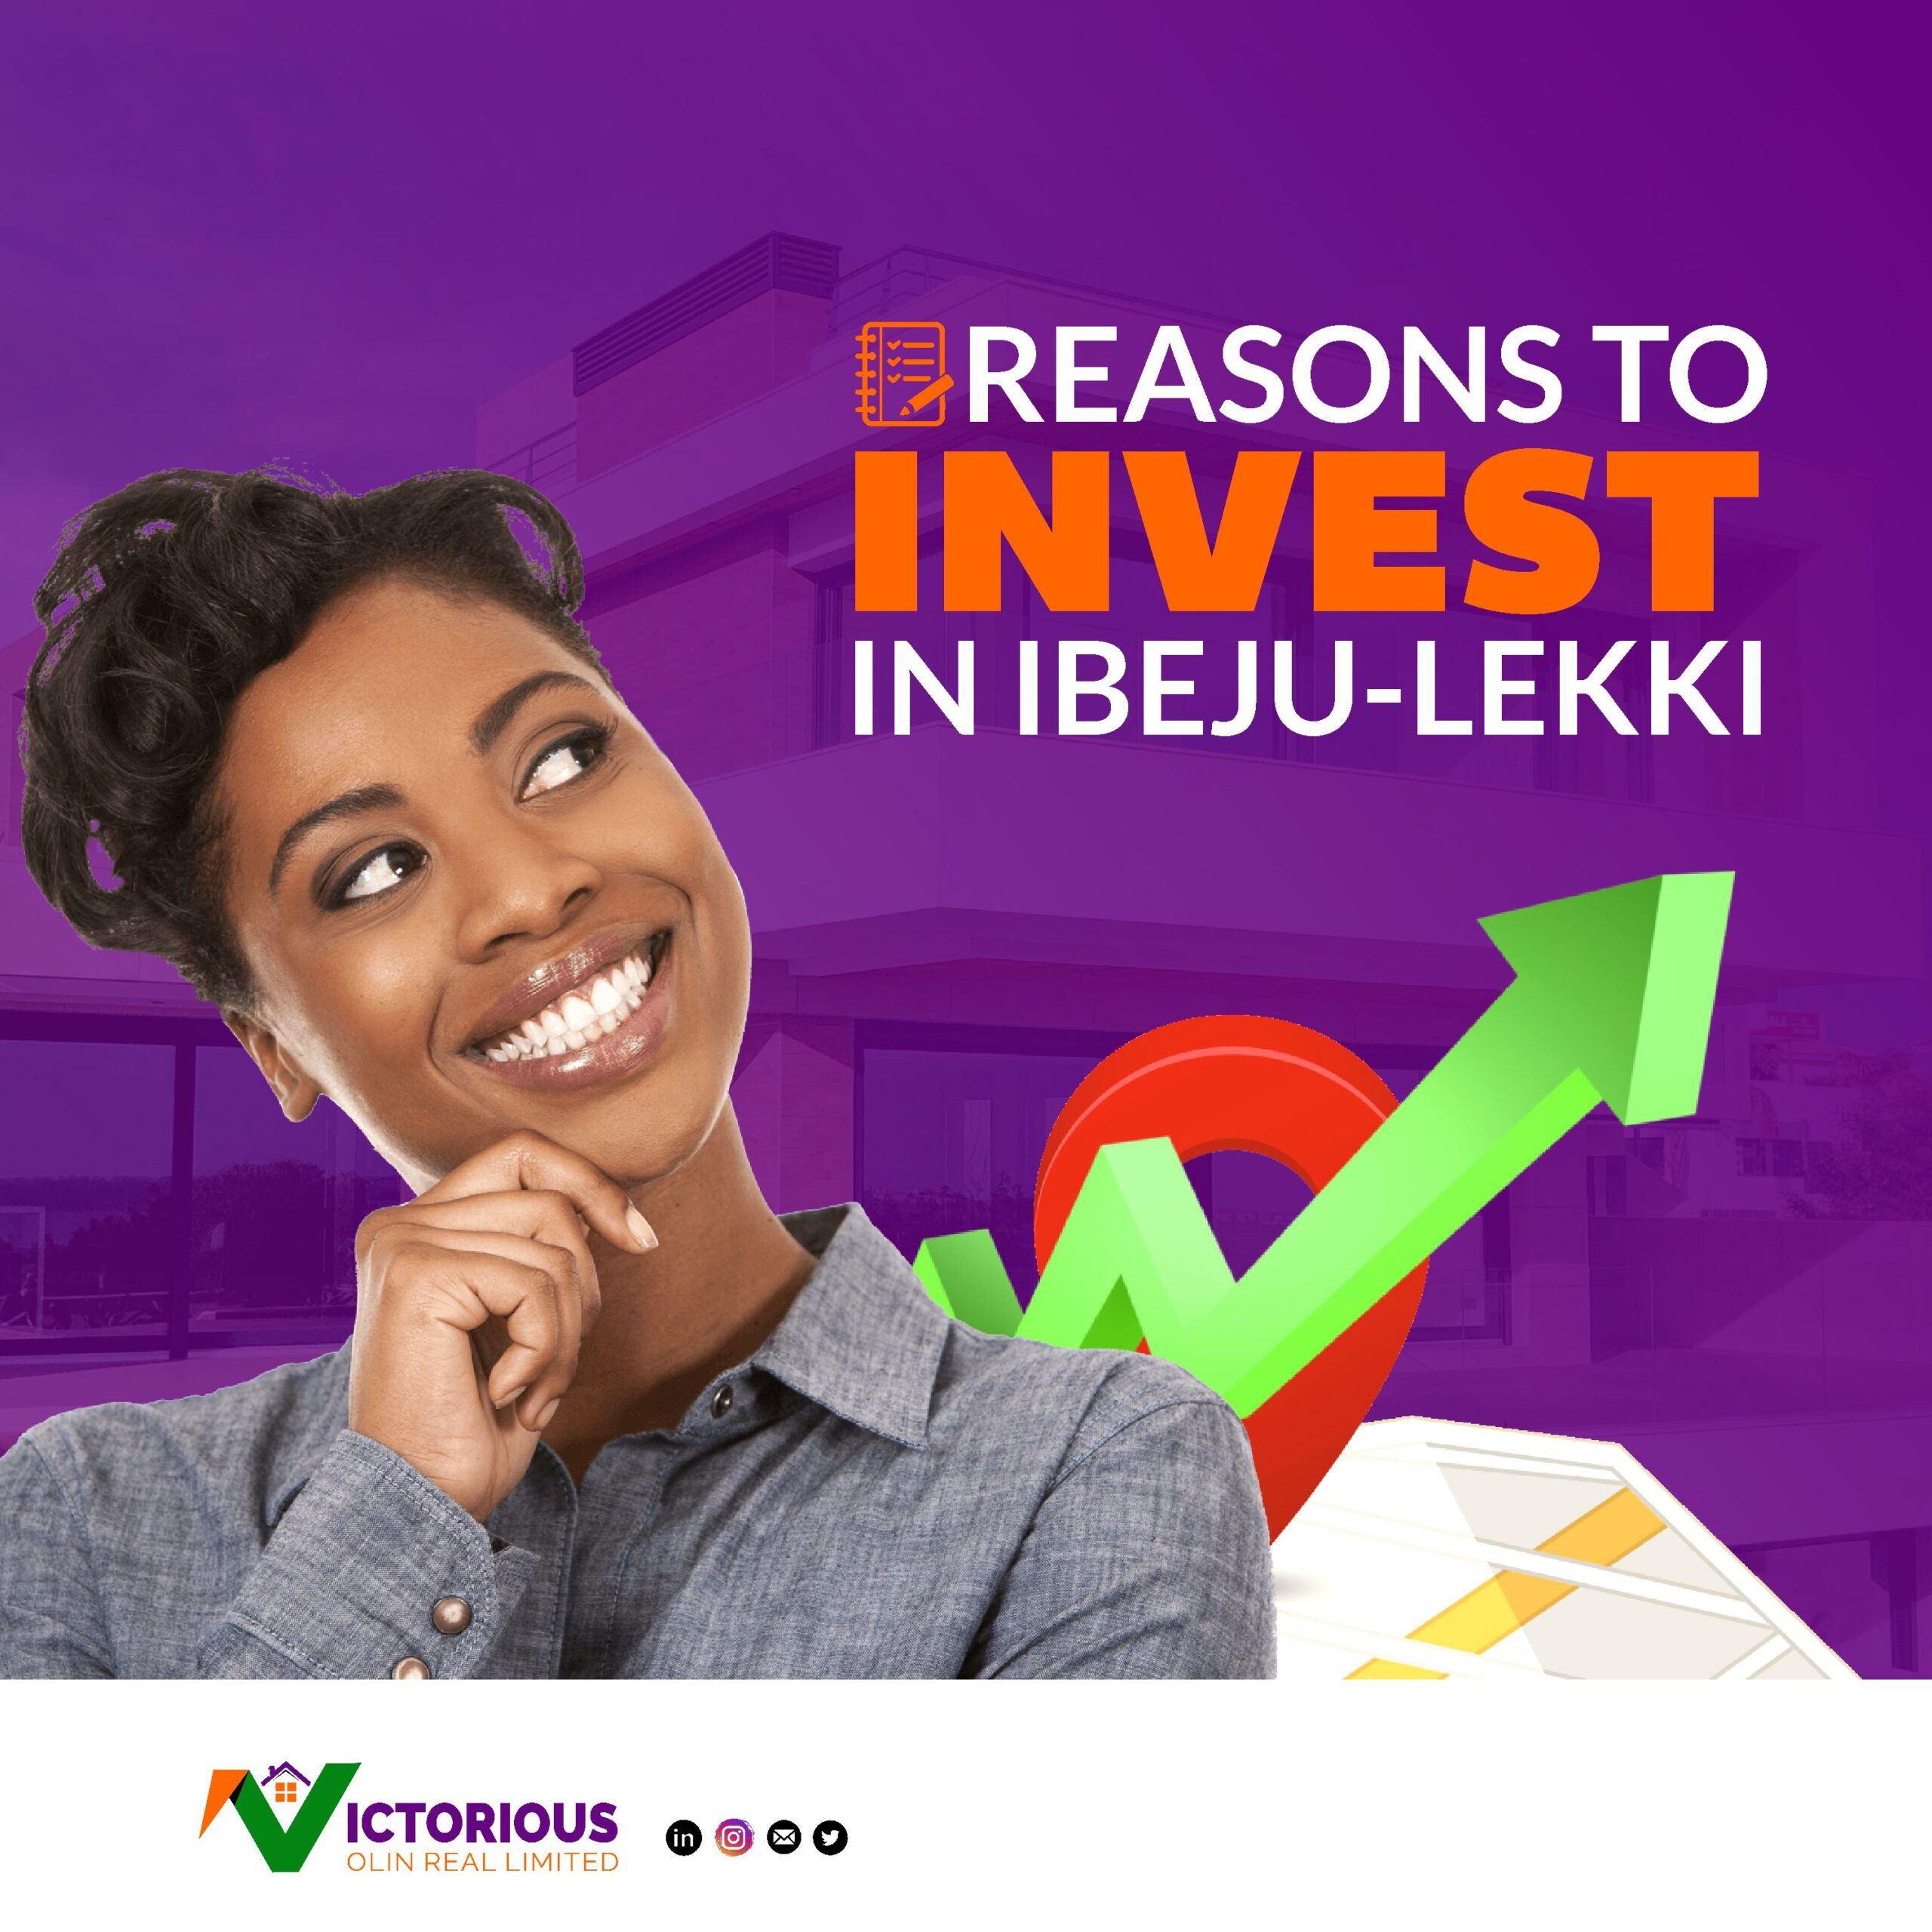 5 reasons to invest in ibeju lekki